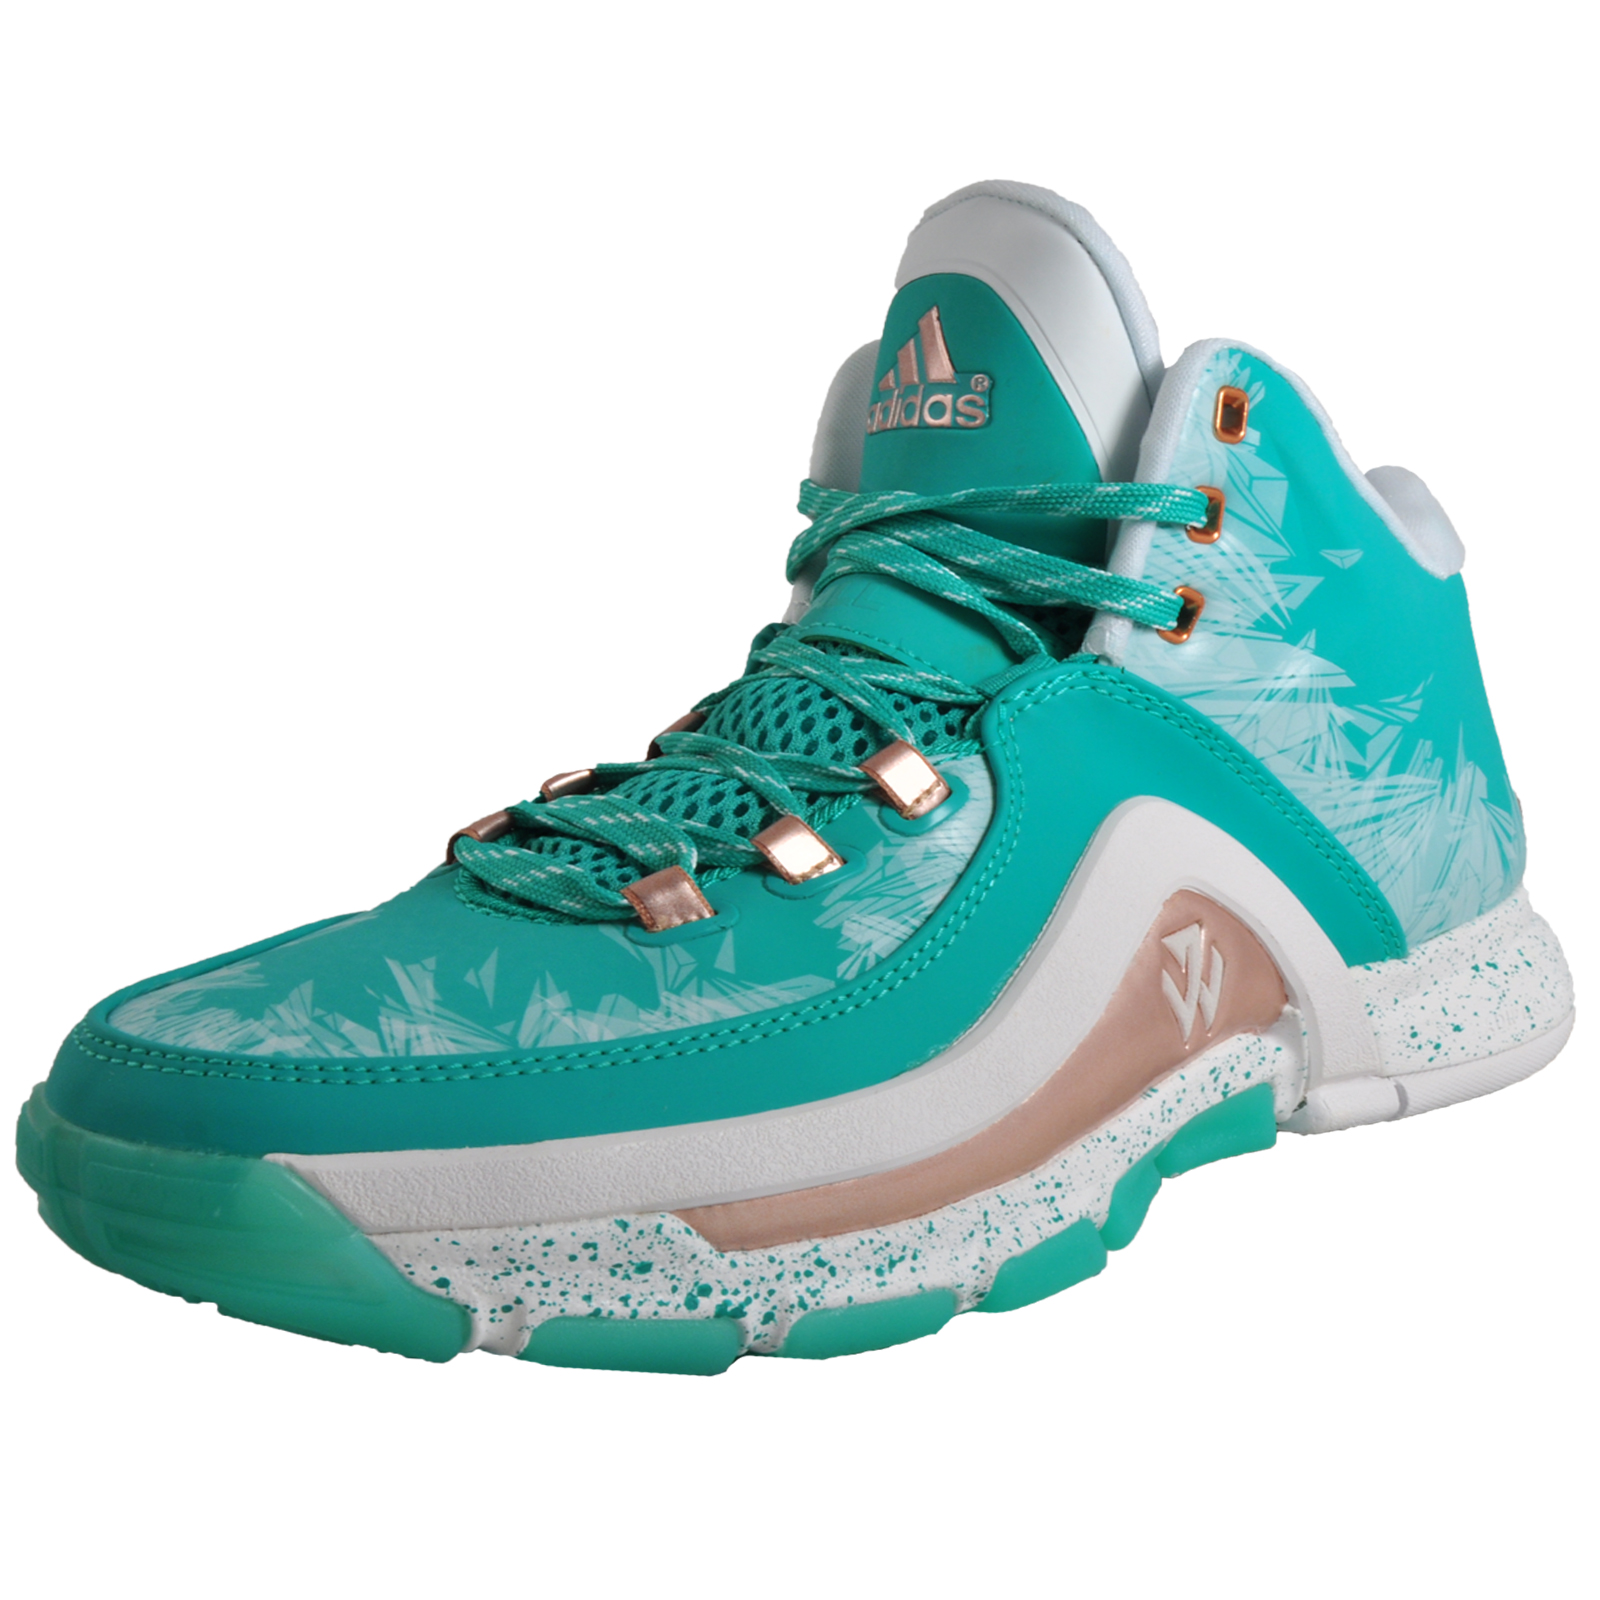 best website 7623f 9c580 Adidas John Wall 2 Limited Edition Premium Mens Basketball Trainers Green